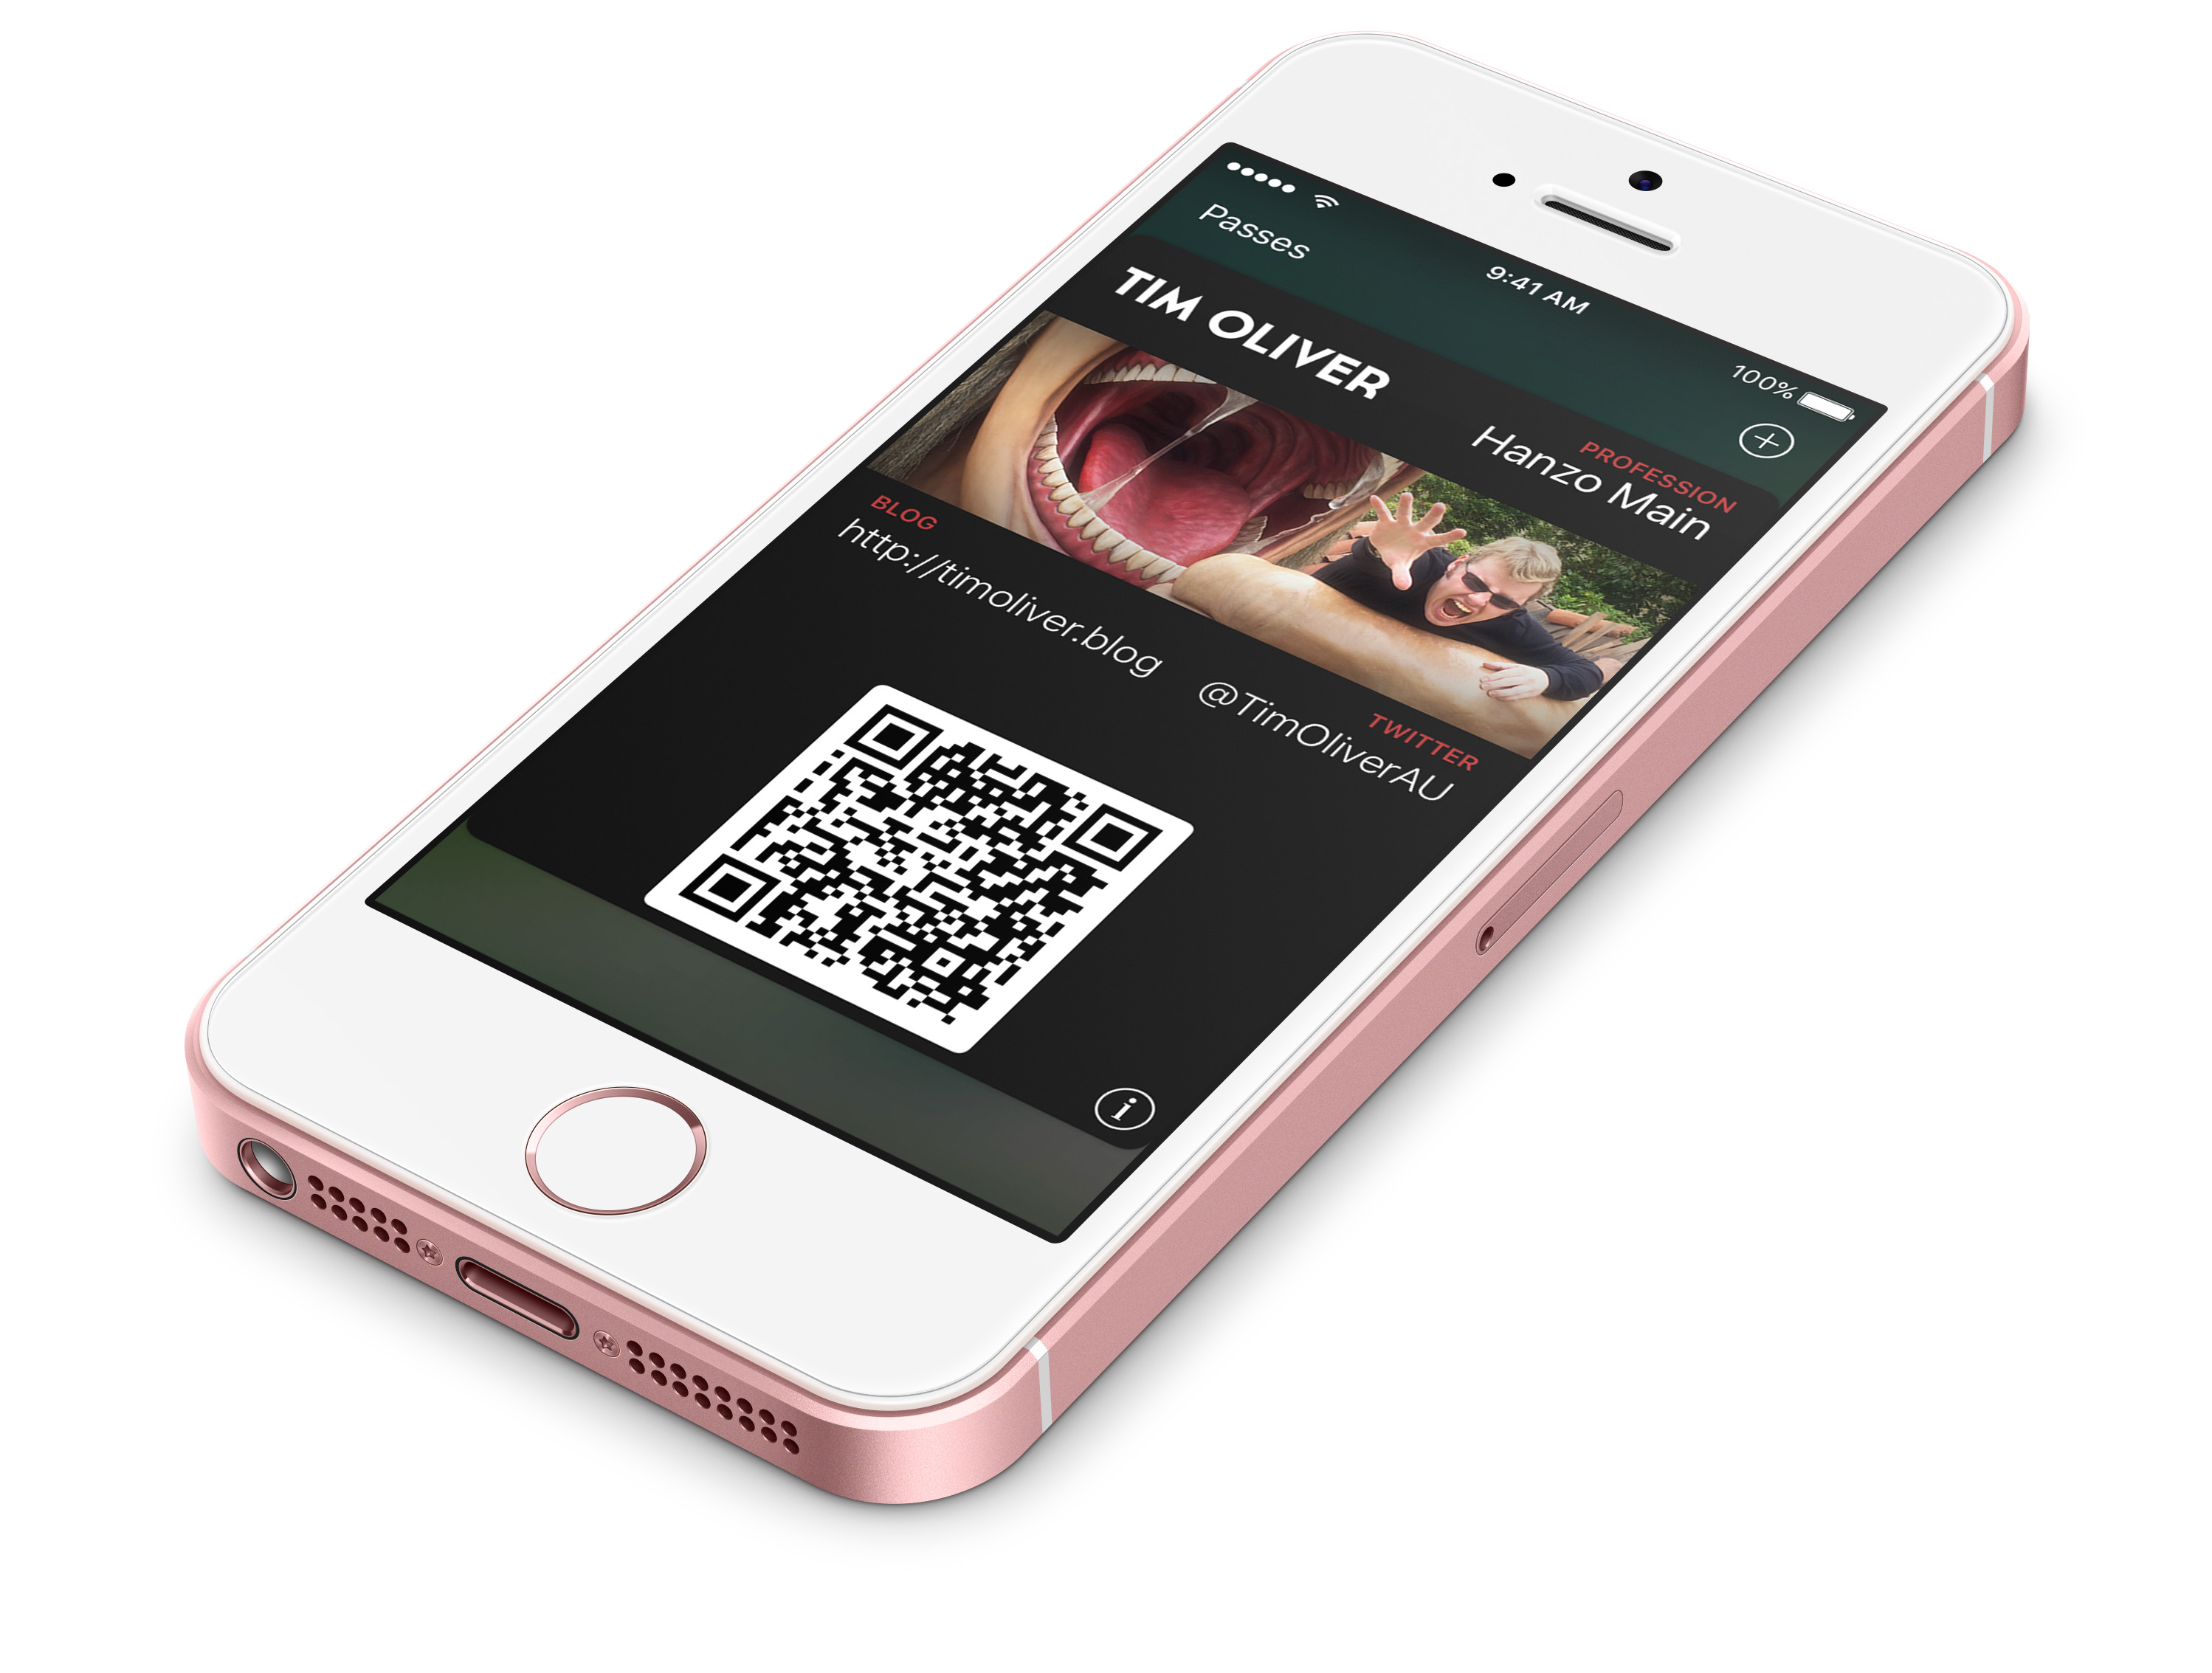 Github timoliverpasskit business card a template for ios wallet a template that can be used to generate passes for the ios wallet app that can be used like business cards reheart Image collections